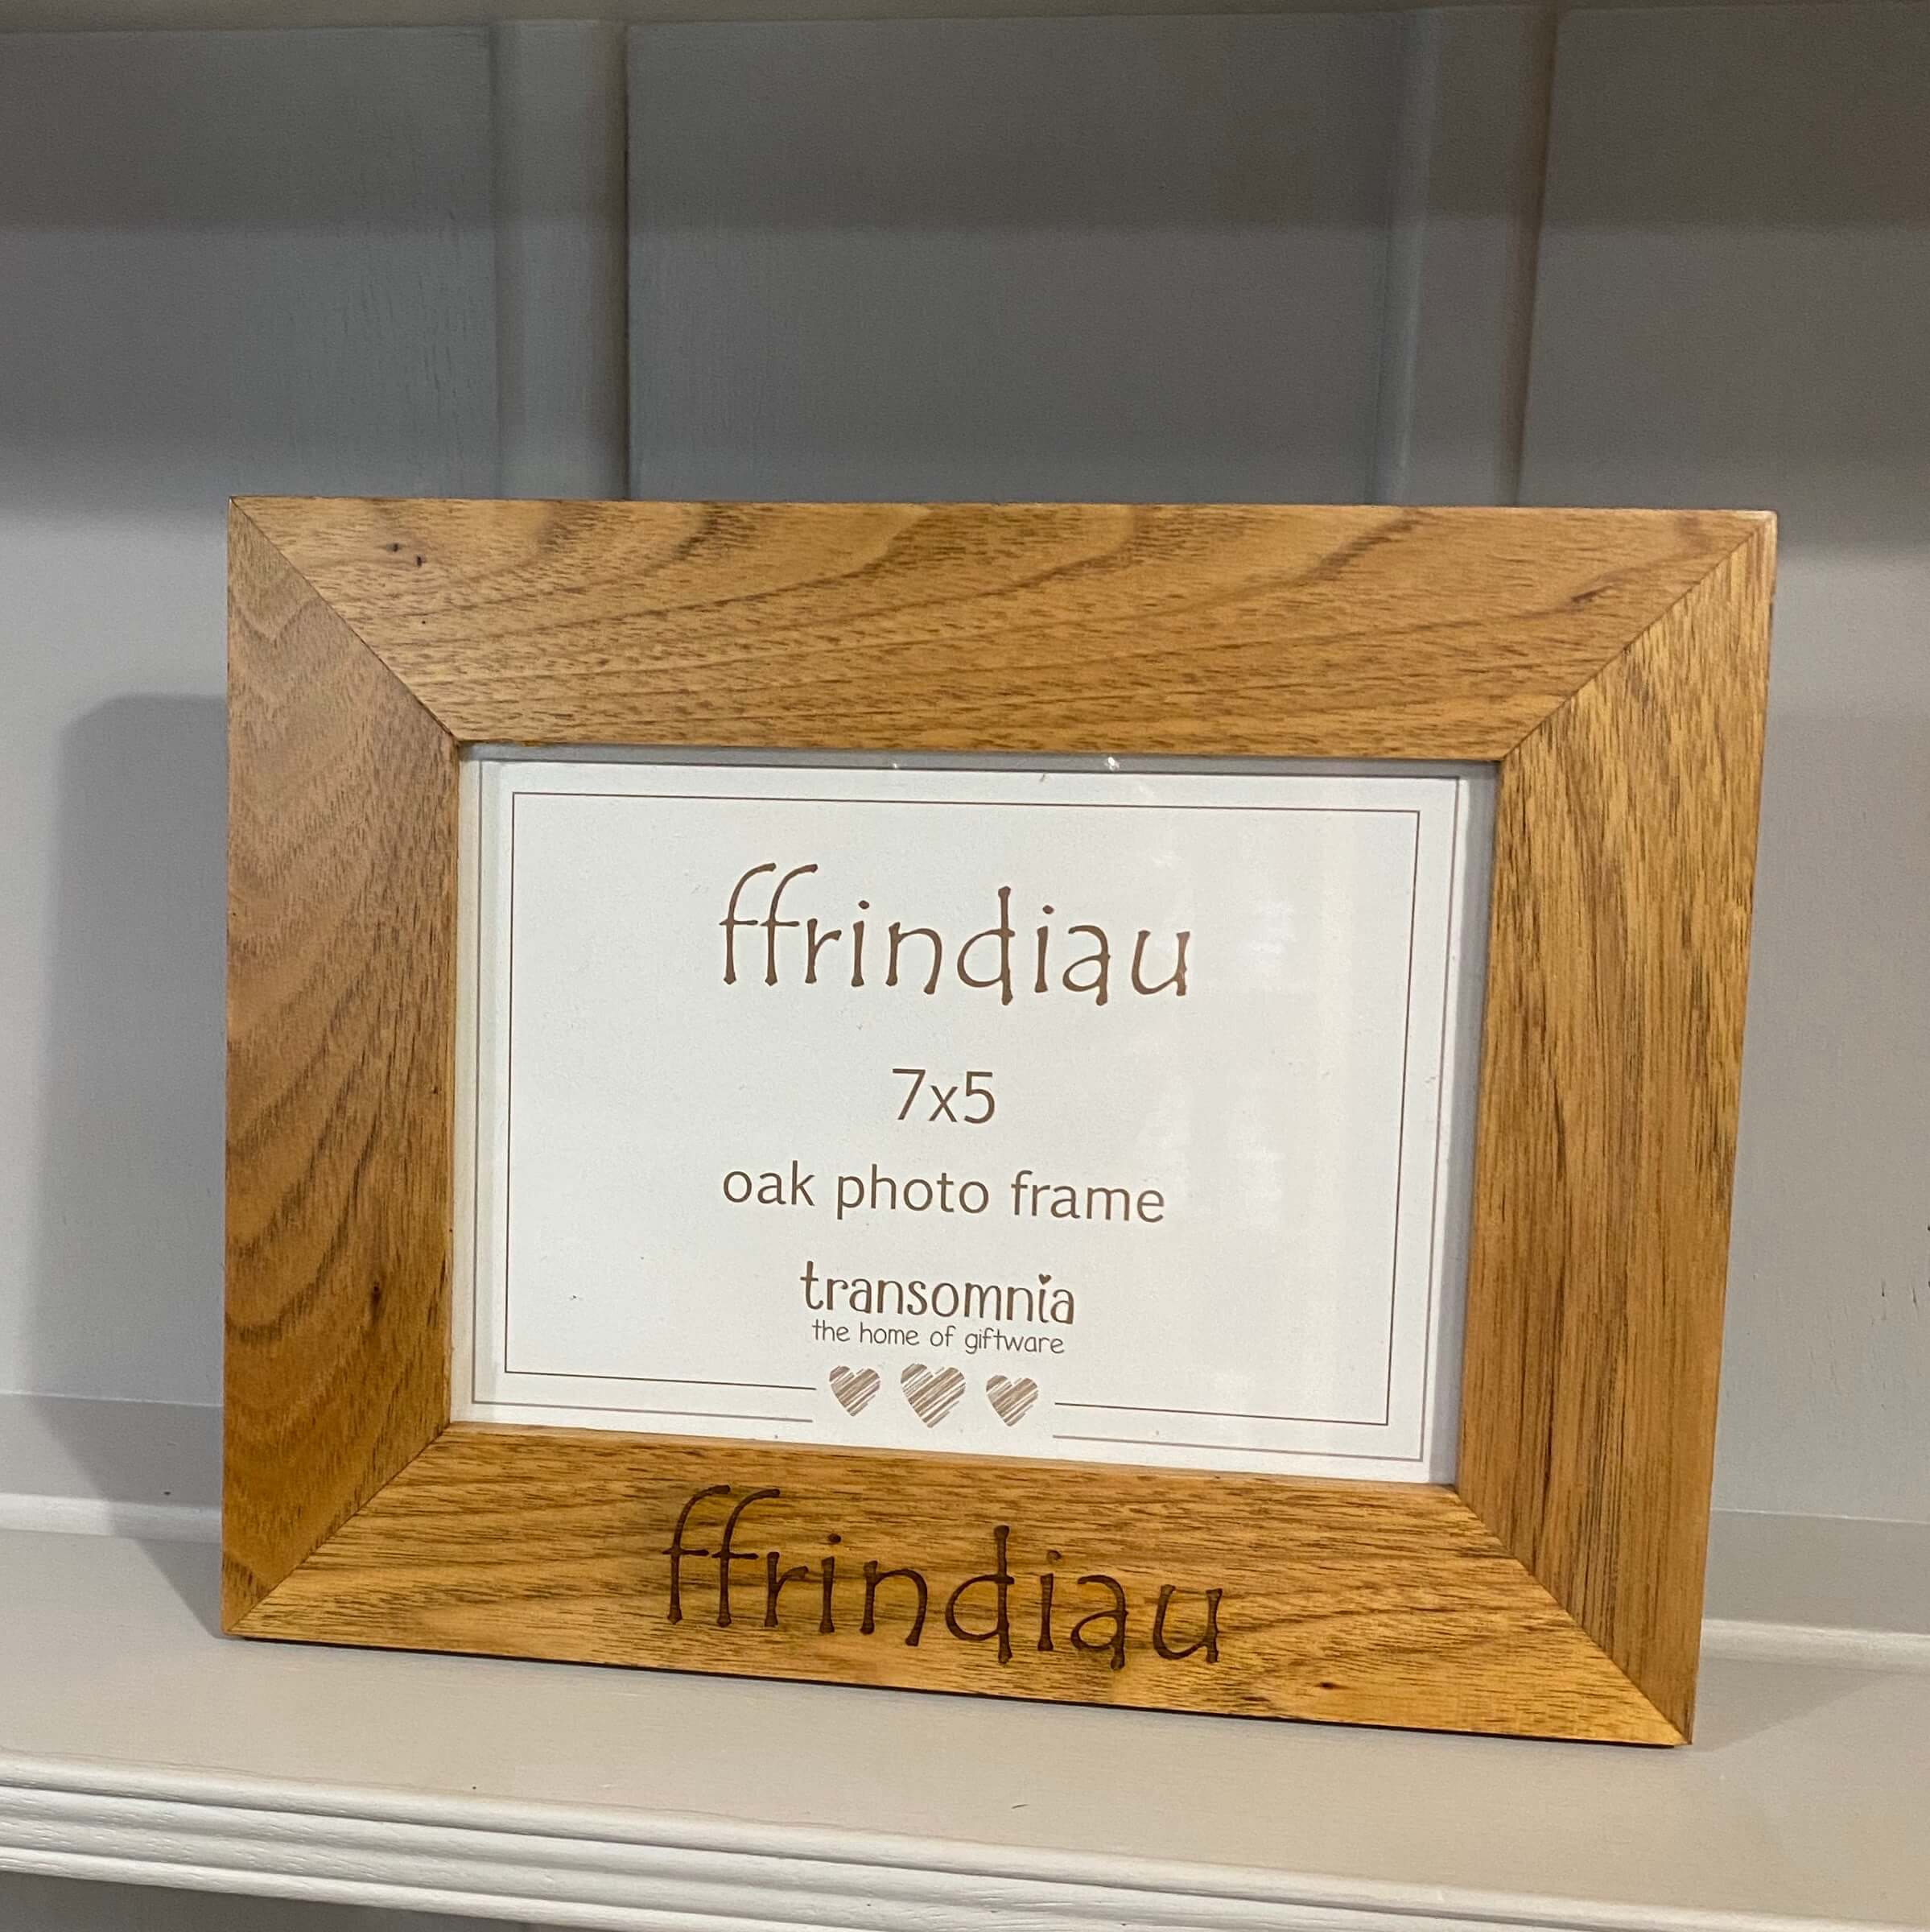 Ffrindiau (Friends) Photo Frame